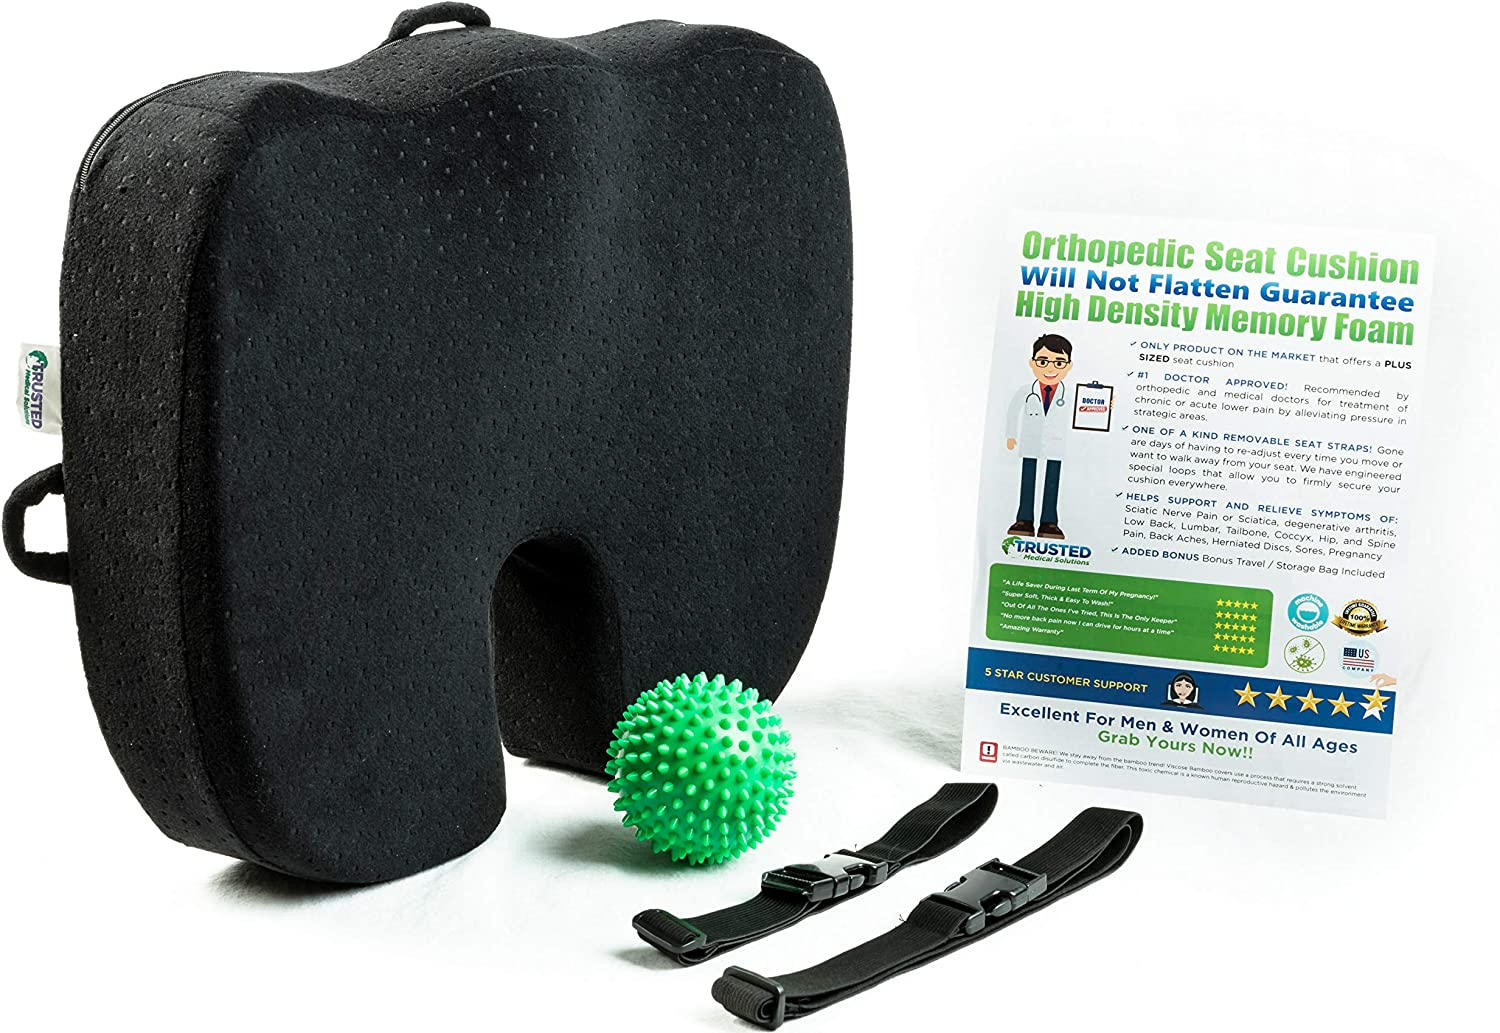 Seat Cushion For Office Chair – Will Not Flatten Coccyx Cushion Orthopedic Memory Foam – Back Tailbone Pain Relief Car, Airplane, Wheelchair, Truck Drivers, Travel – Sciatica Butt Pillow for Sitting